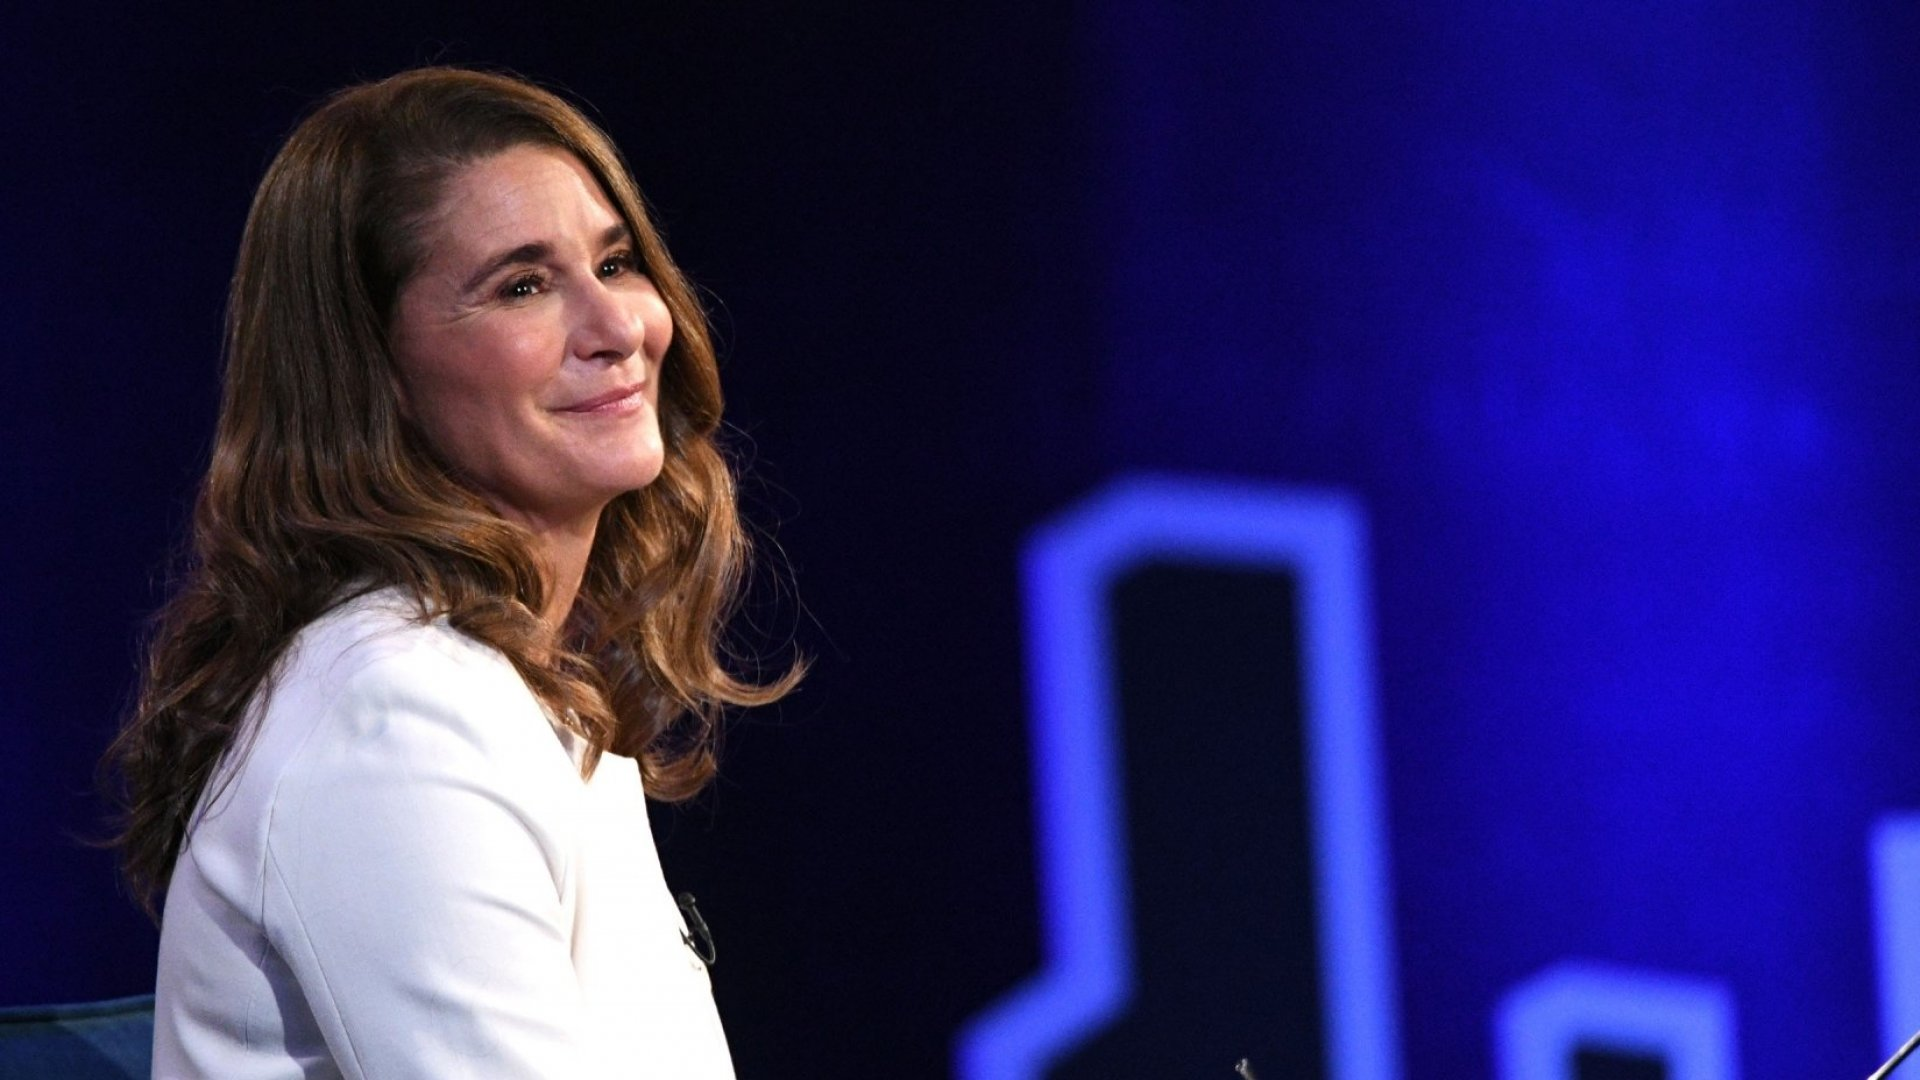 10 Inspiring Facts About Melinda Gates